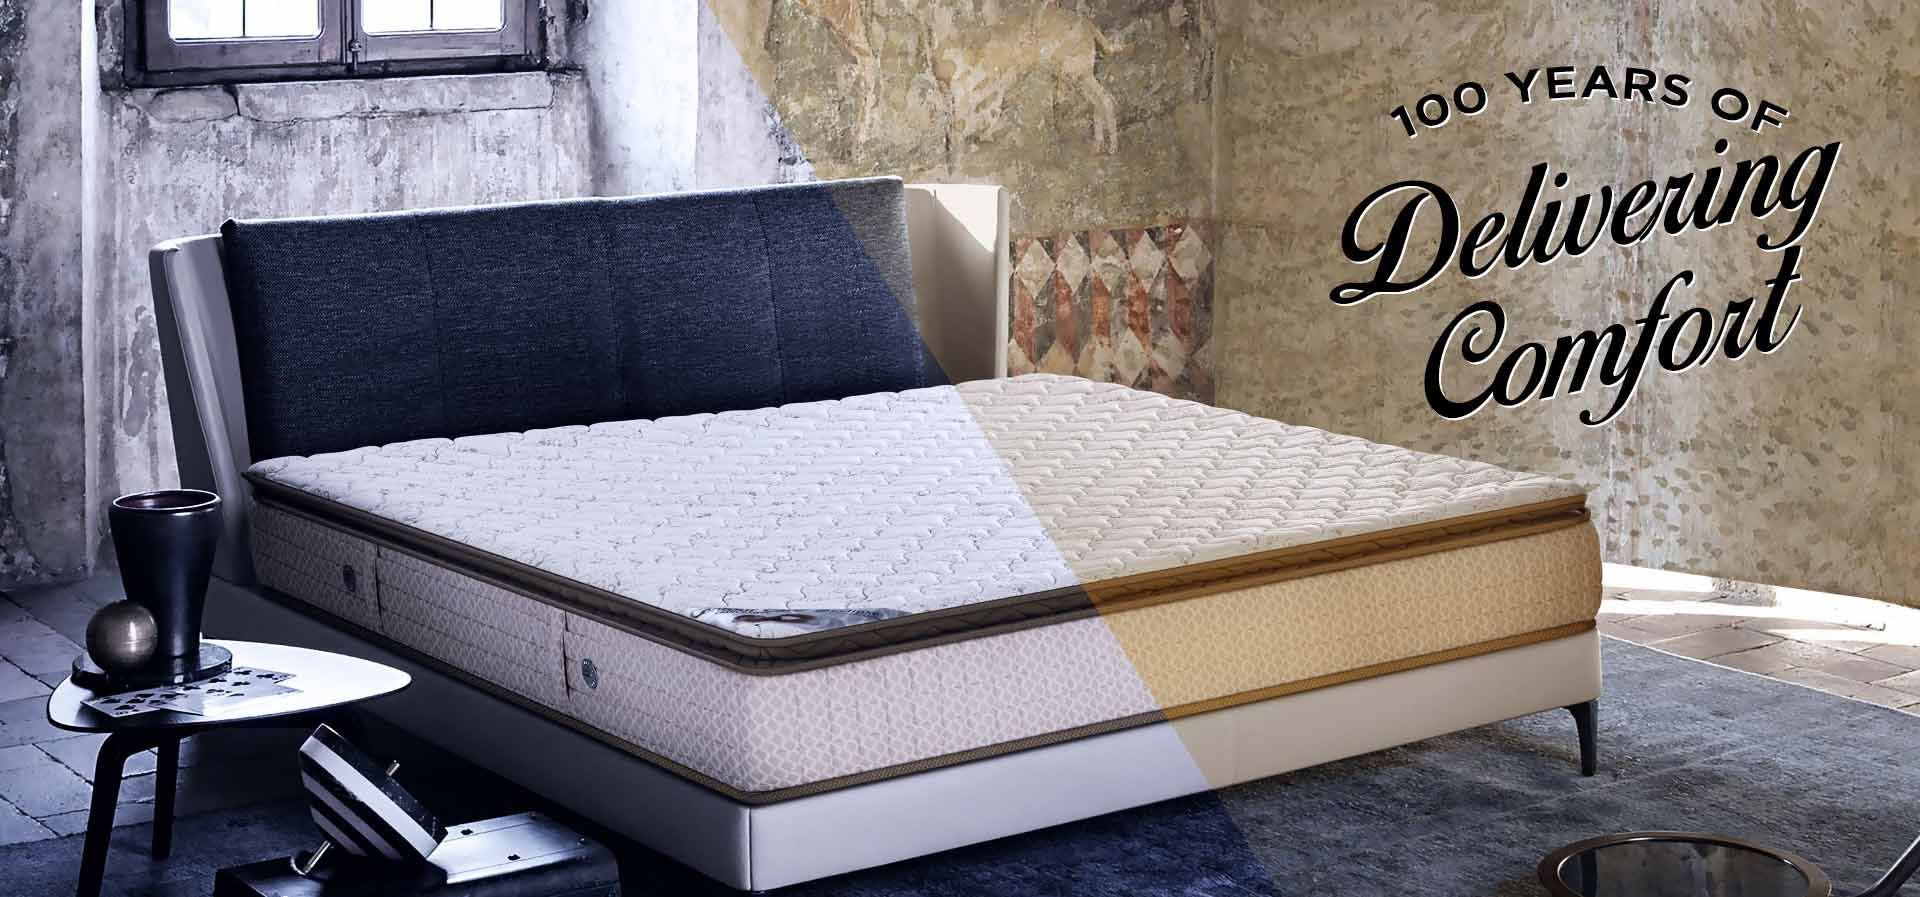 Mattress Companies In India